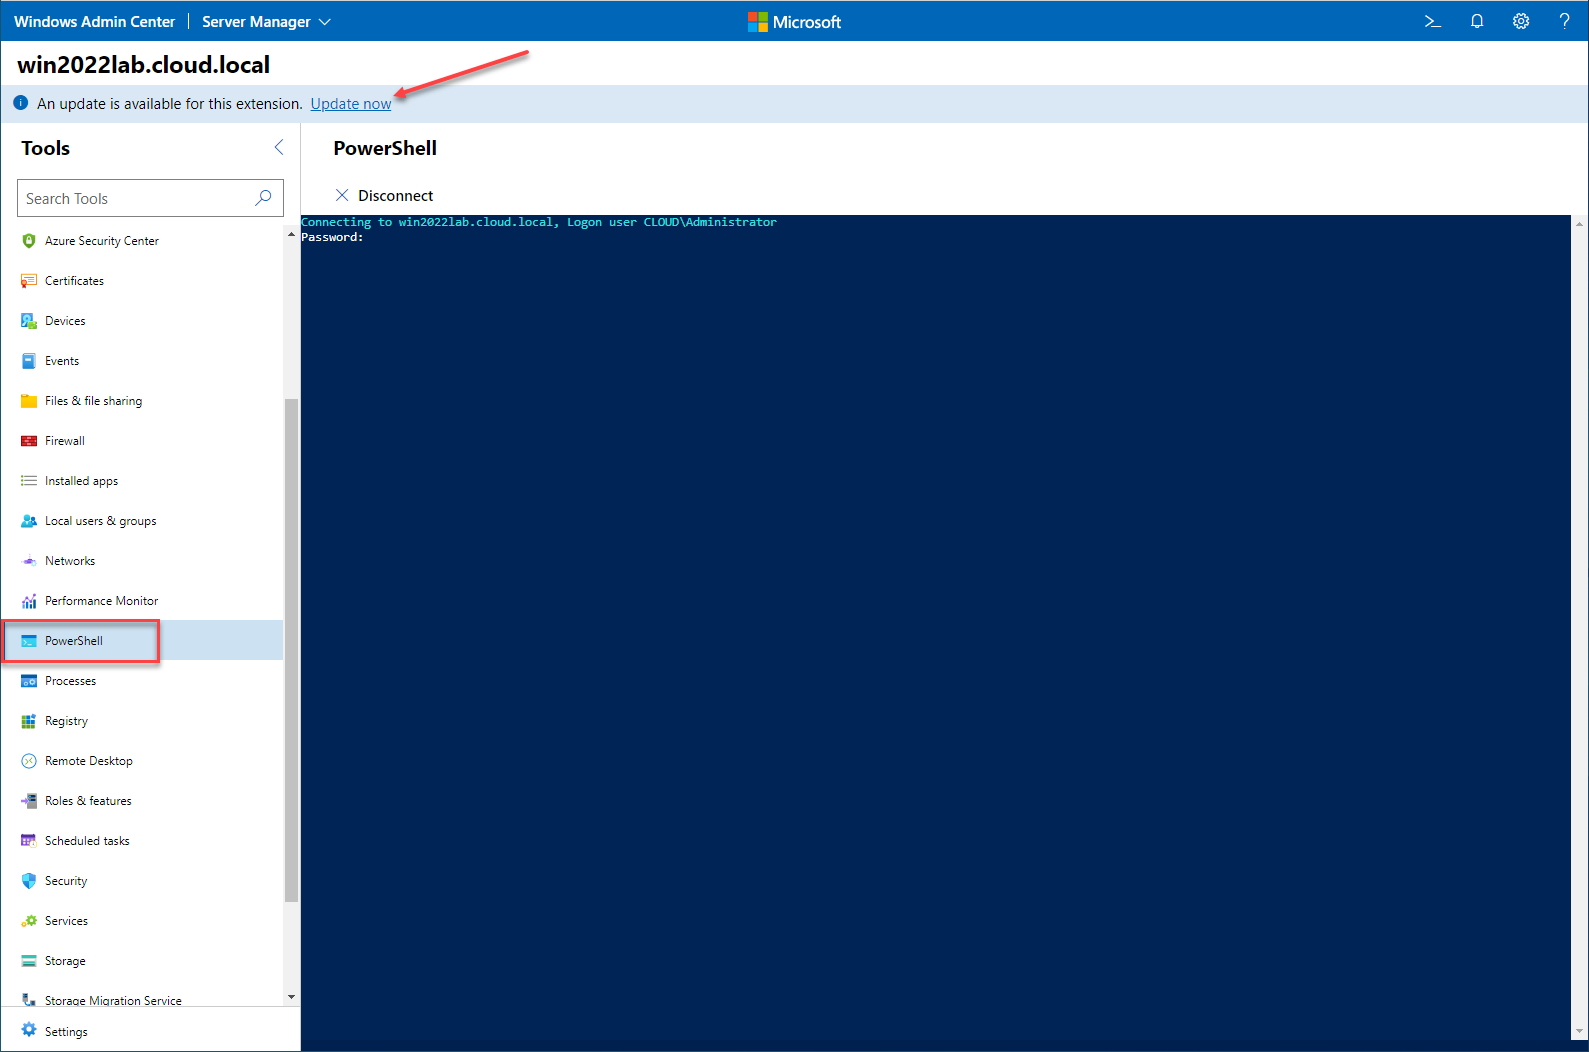 Access a remote PowerShell prompt with Windows Admin Center